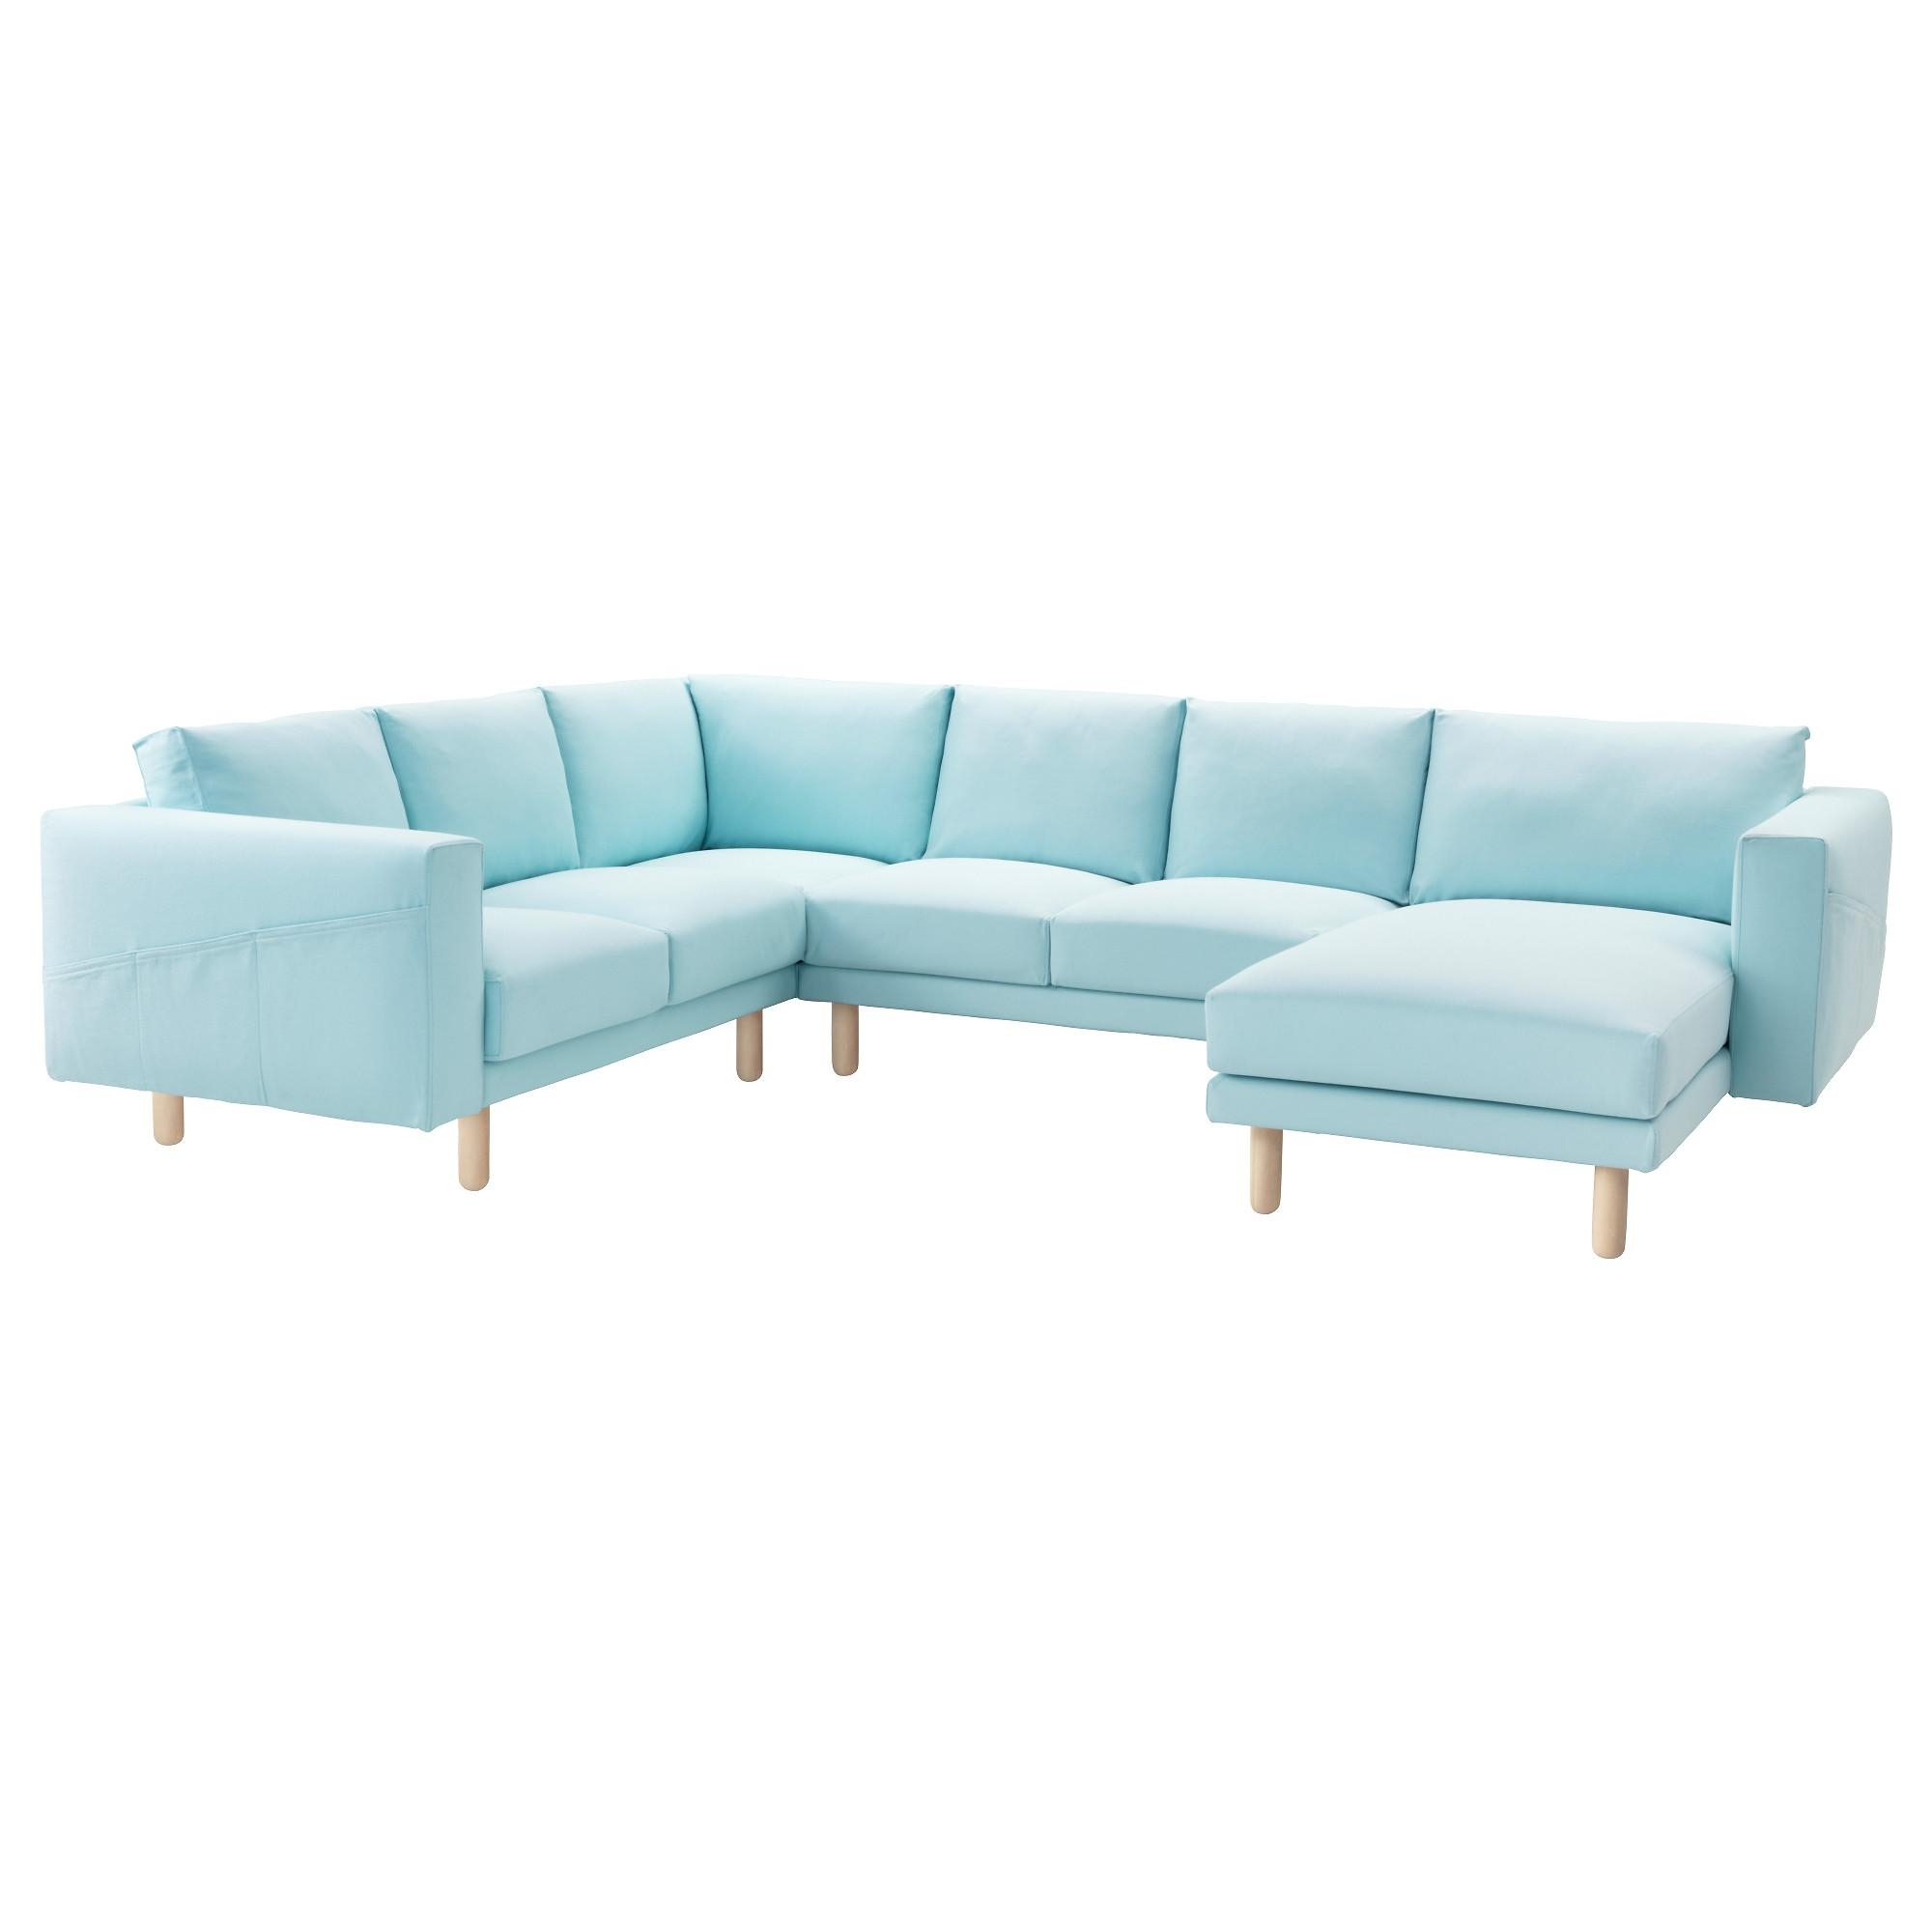 Norsborg Corner Sofa 2+2 With Chaise Longue Gräsbo Light Blue Throughout Corner Sofas (Image 14 of 20)